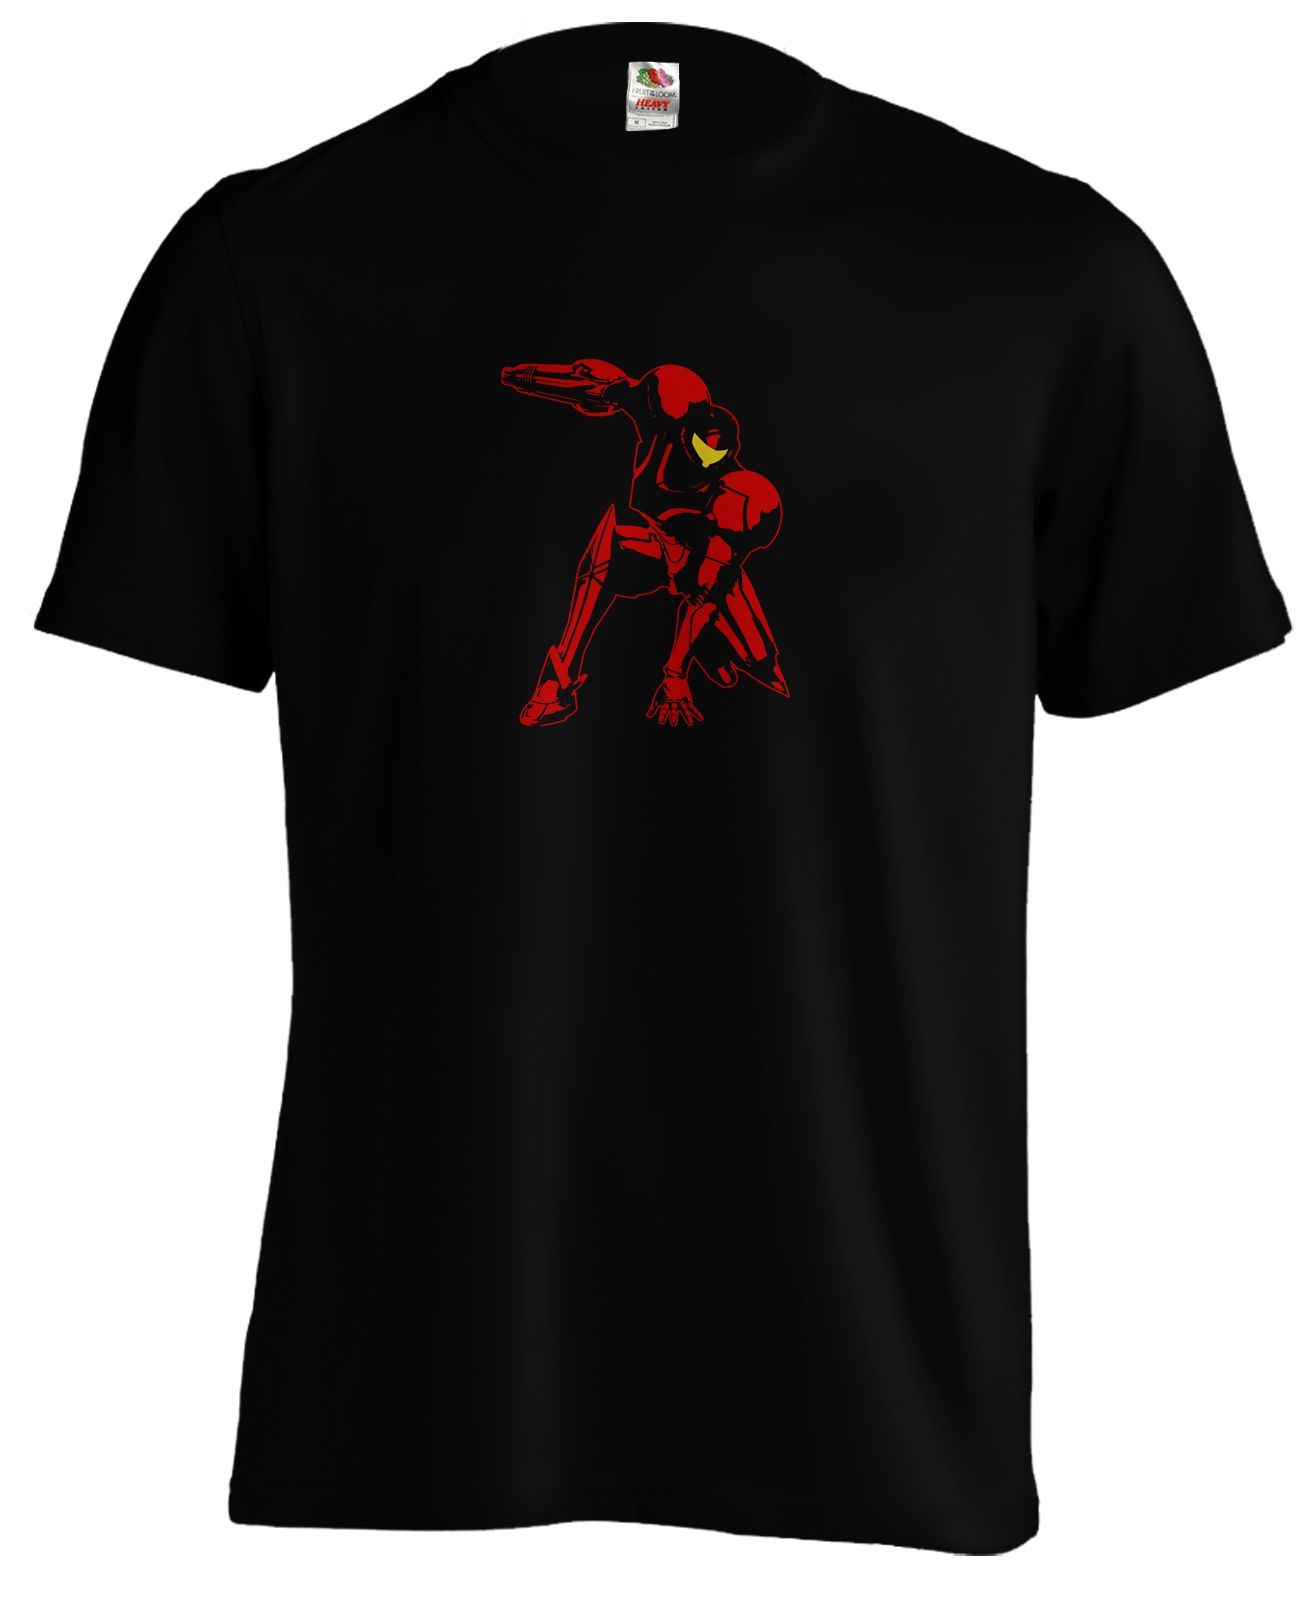 Samus Aran Super Metroid Game T Shirt Tee Retro Gaming New T Shirts Funny Tops Tee New Unisex Funny Tops image